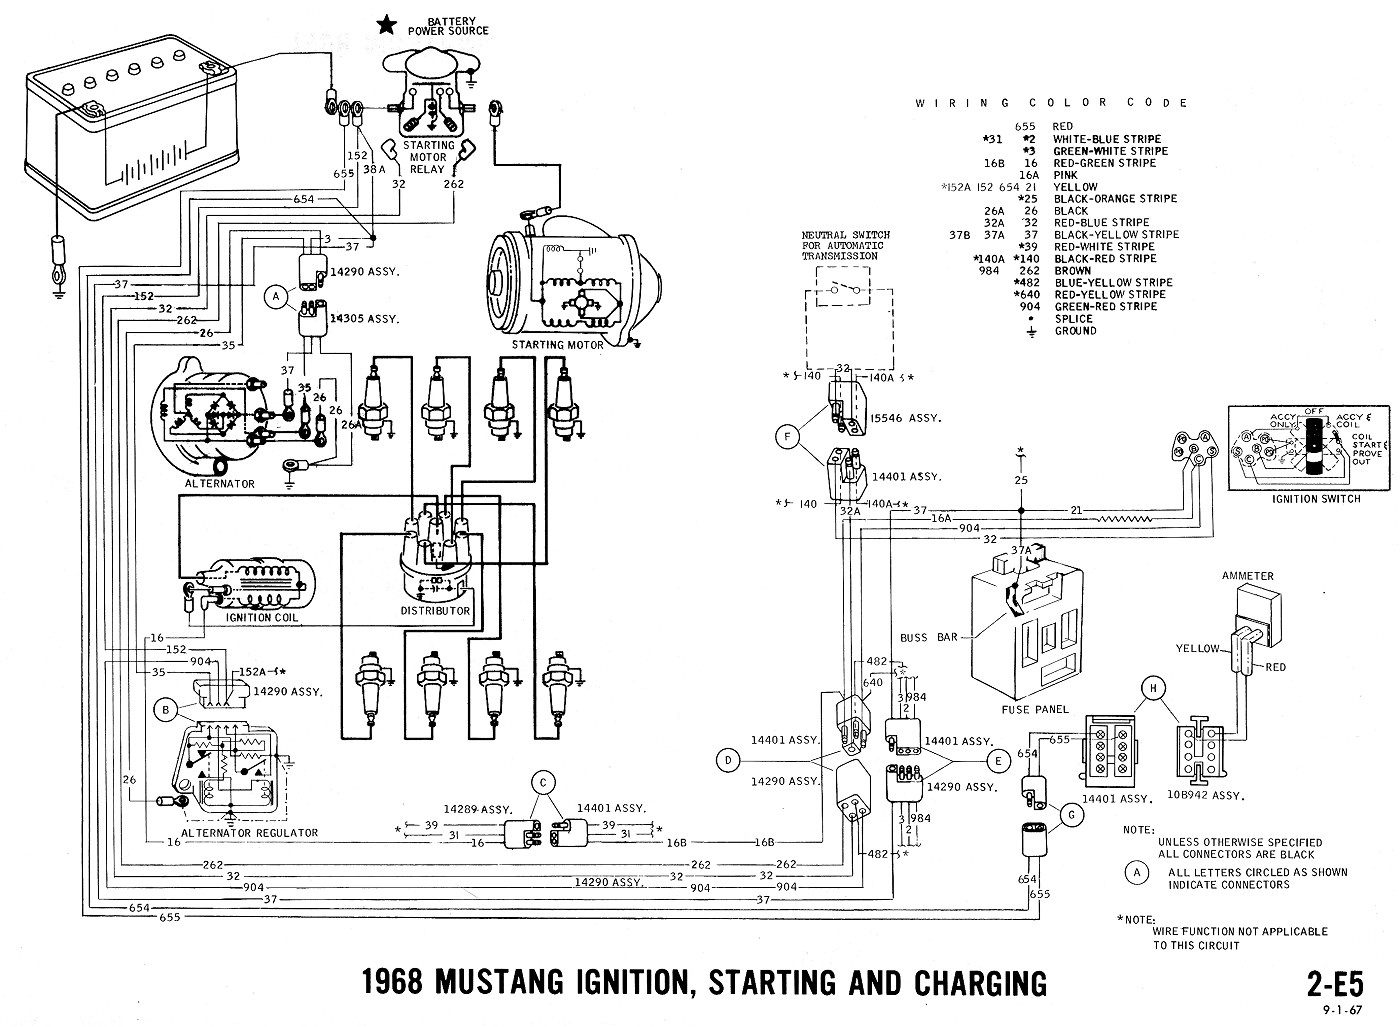 1980 Mustang Ignition Wiring Diagram - Wiring Diagram Models rub-strong -  rub-strong.zeevaproduction.it | 1980 Ford Ignition Wiring Diagram Schematic |  | rub-strong.zeevaproduction.it